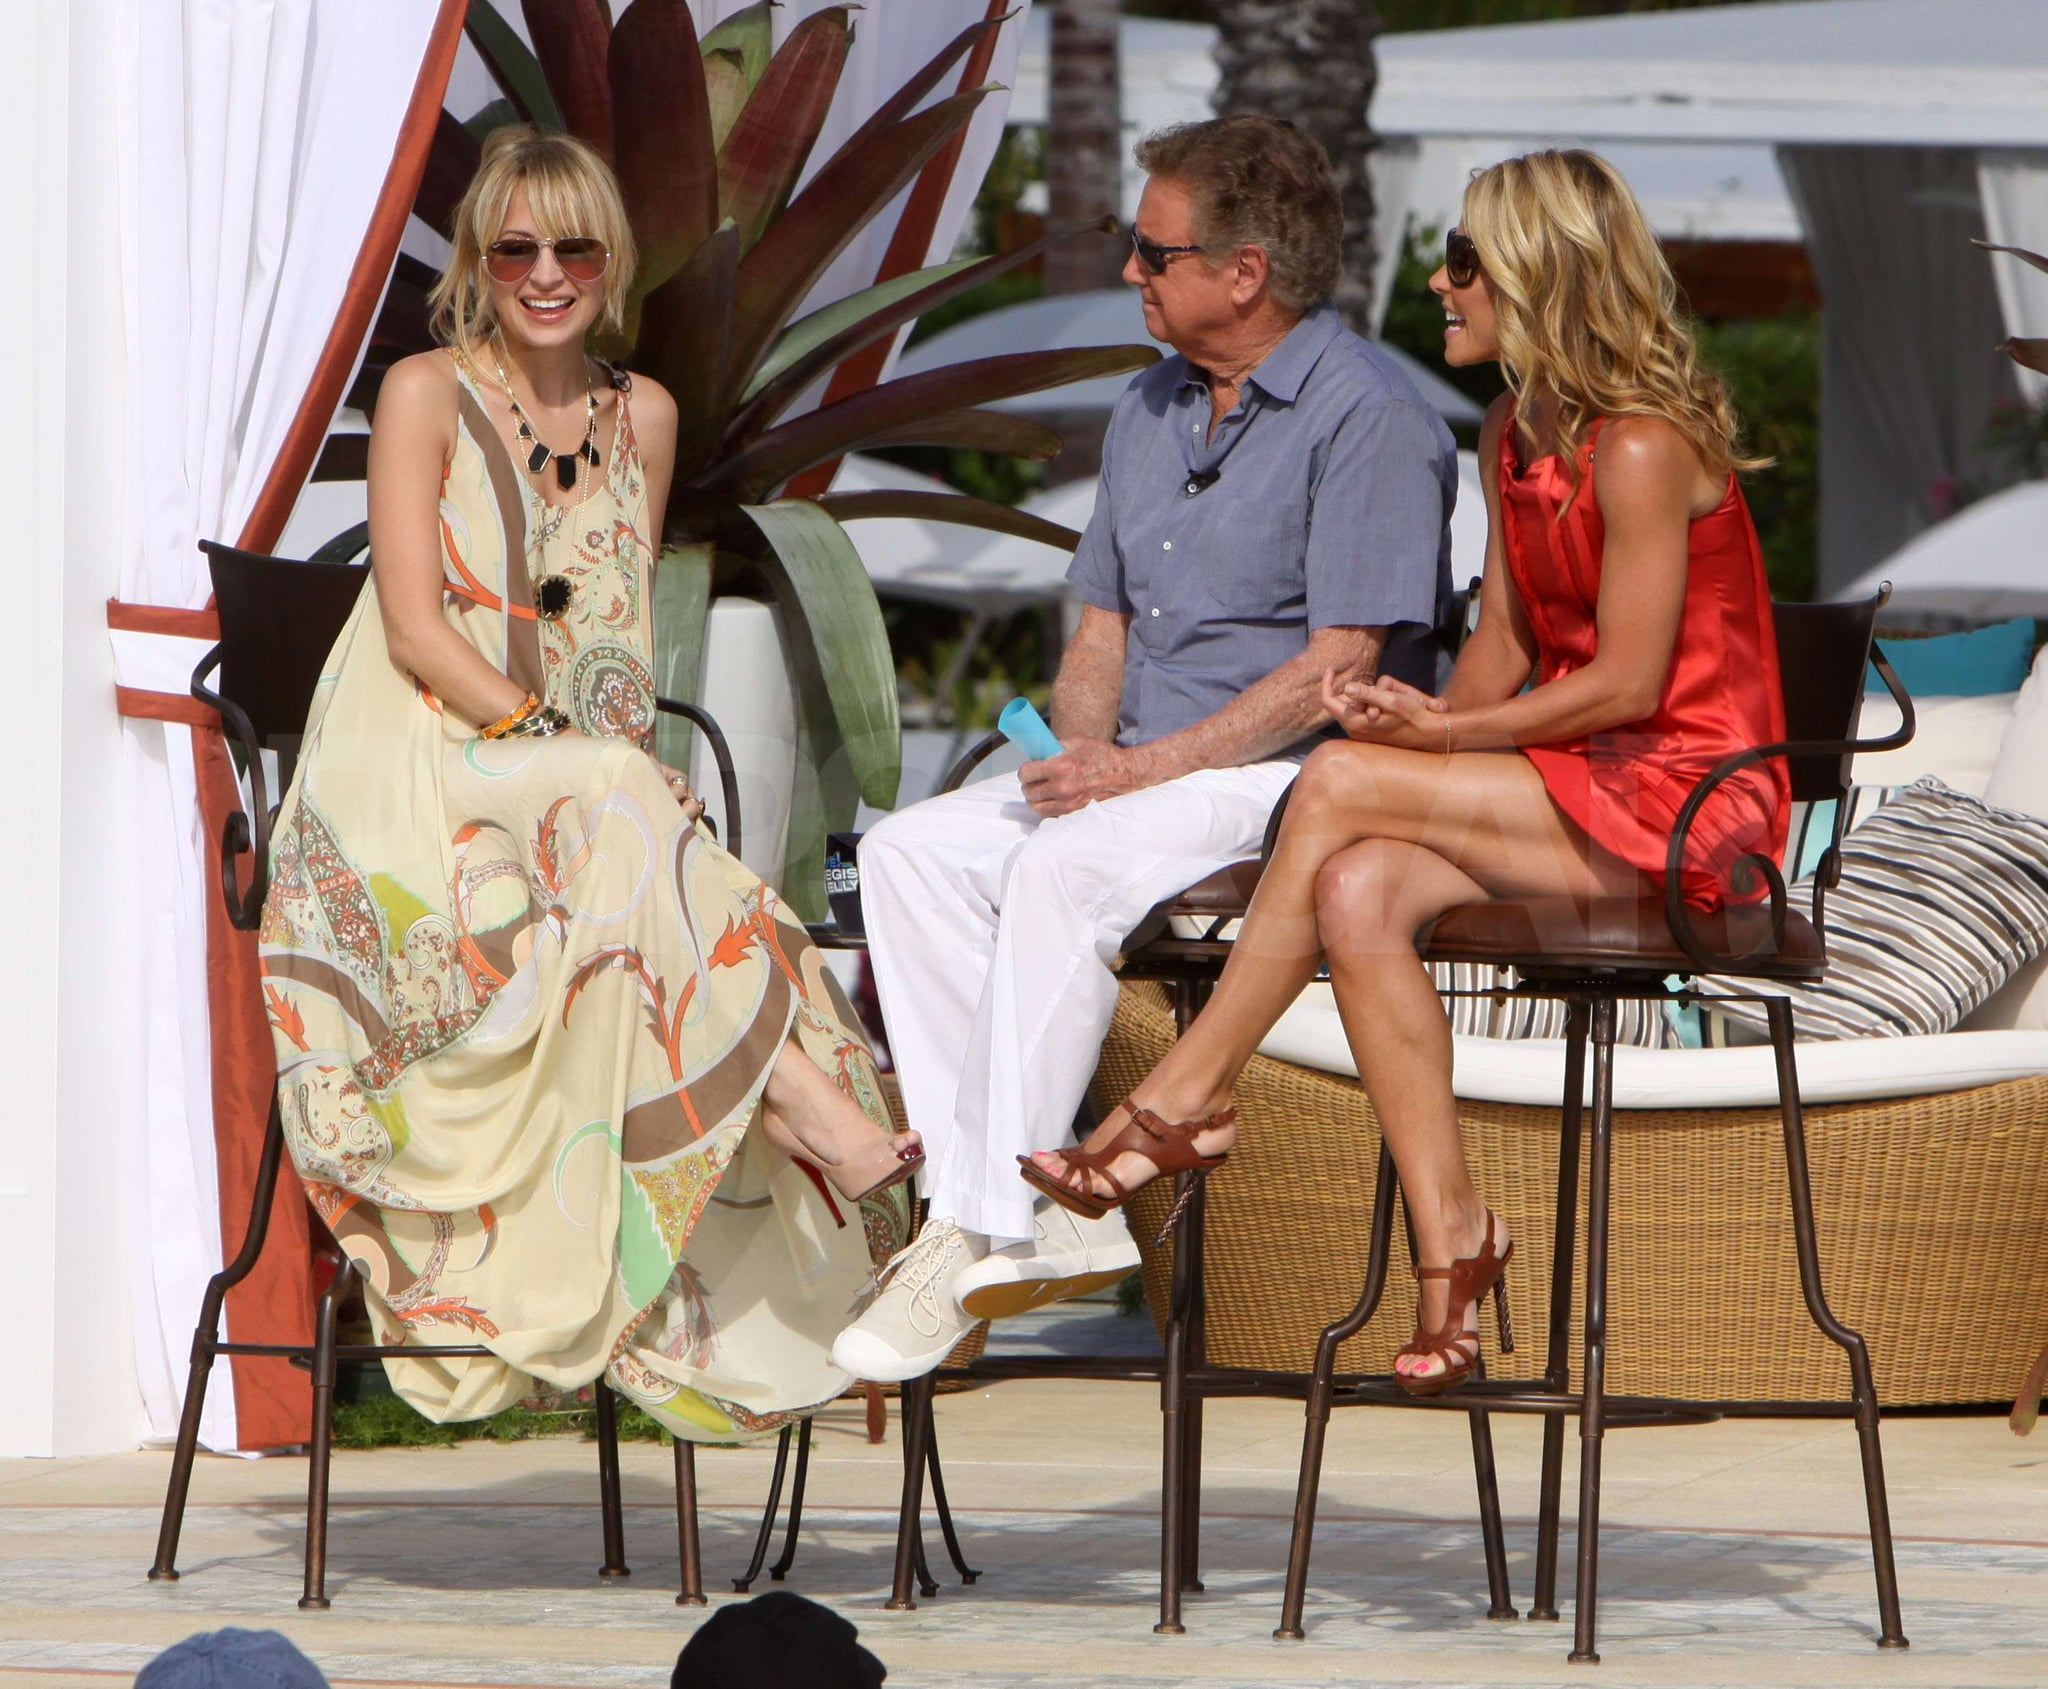 Photos of Nicole Richie on Regis and Kelly Promoting House of Harlow